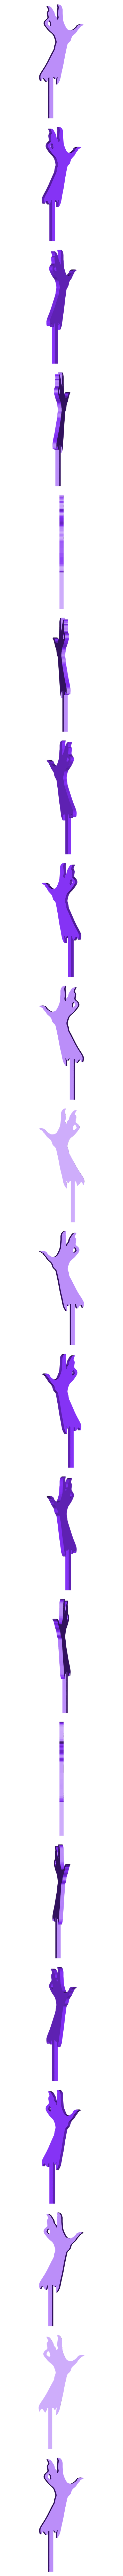 Topper - Zombie Hand 2.stl Download STL file Night of the living muffins • 3D printing object, InSpace